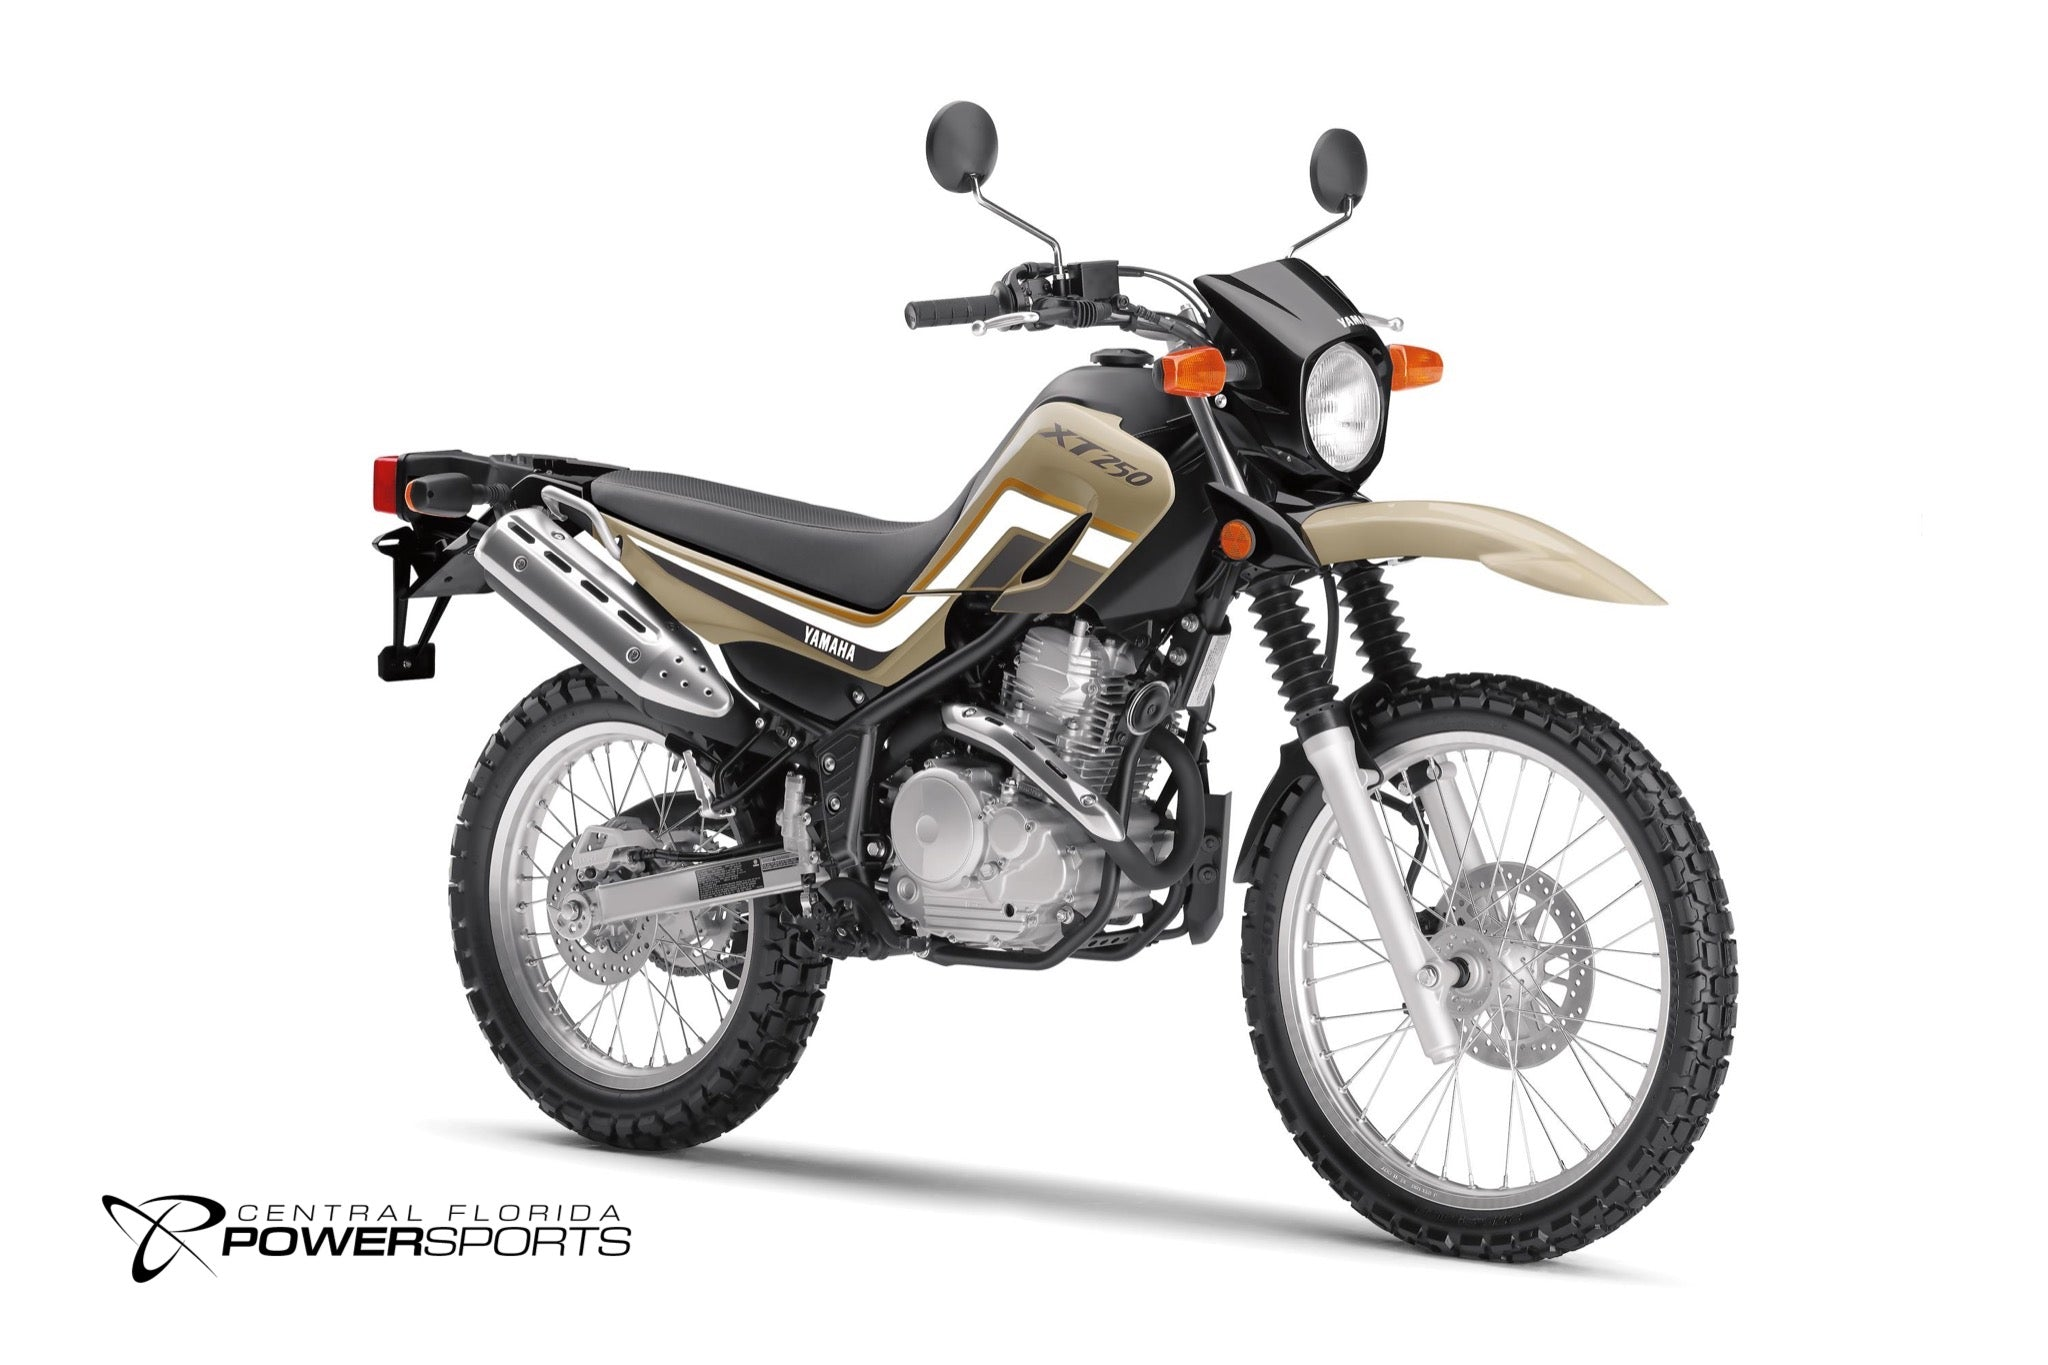 2018 Yamaha XT250 Dual Sport Motorcycle For Sale